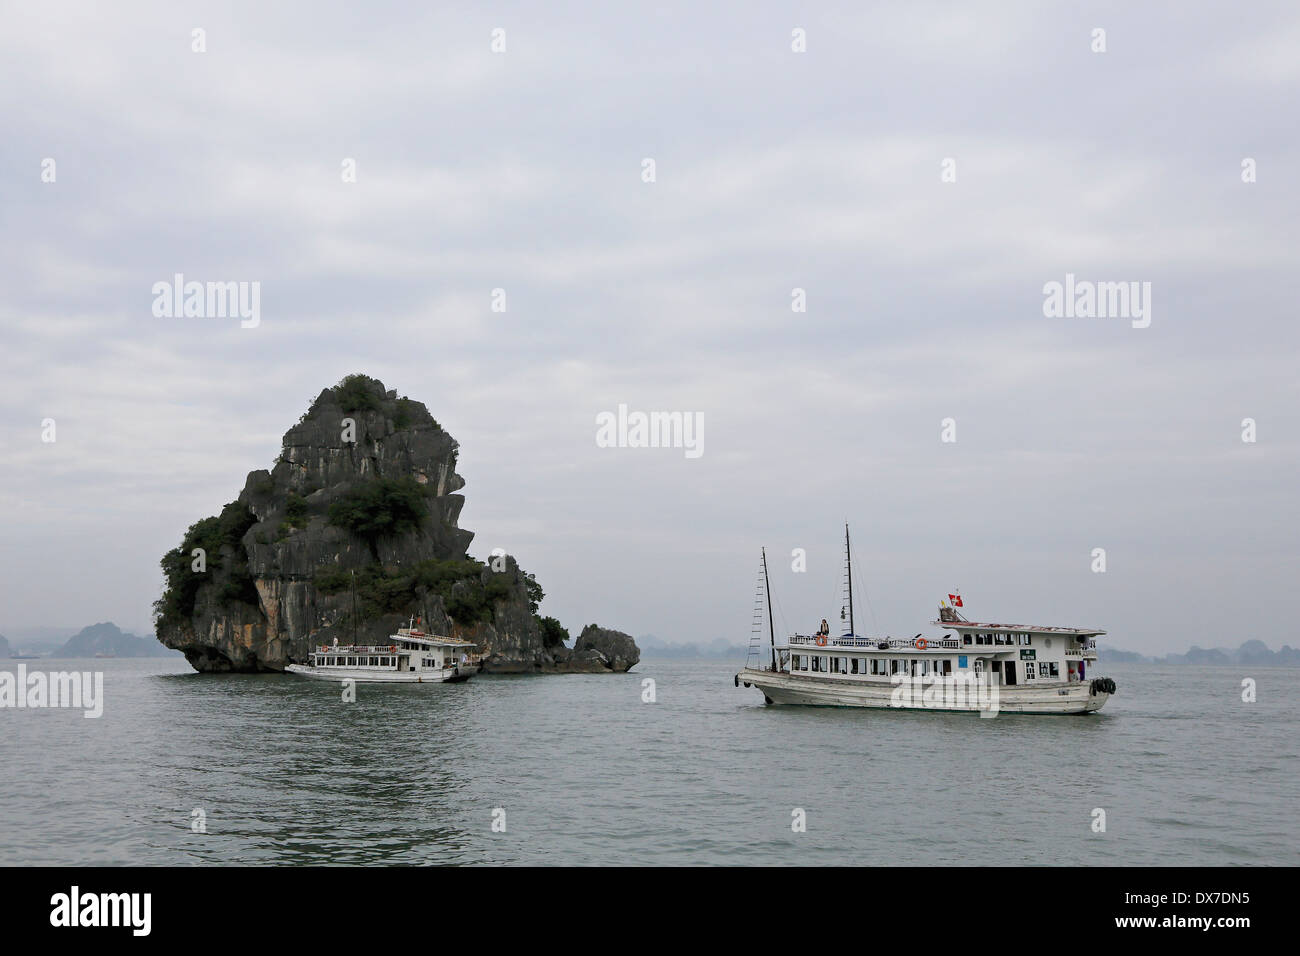 Tour boats in Ha Long Bay surrounded by  limestone karst formations.  Vietnam, Southeast Asia - Stock Image